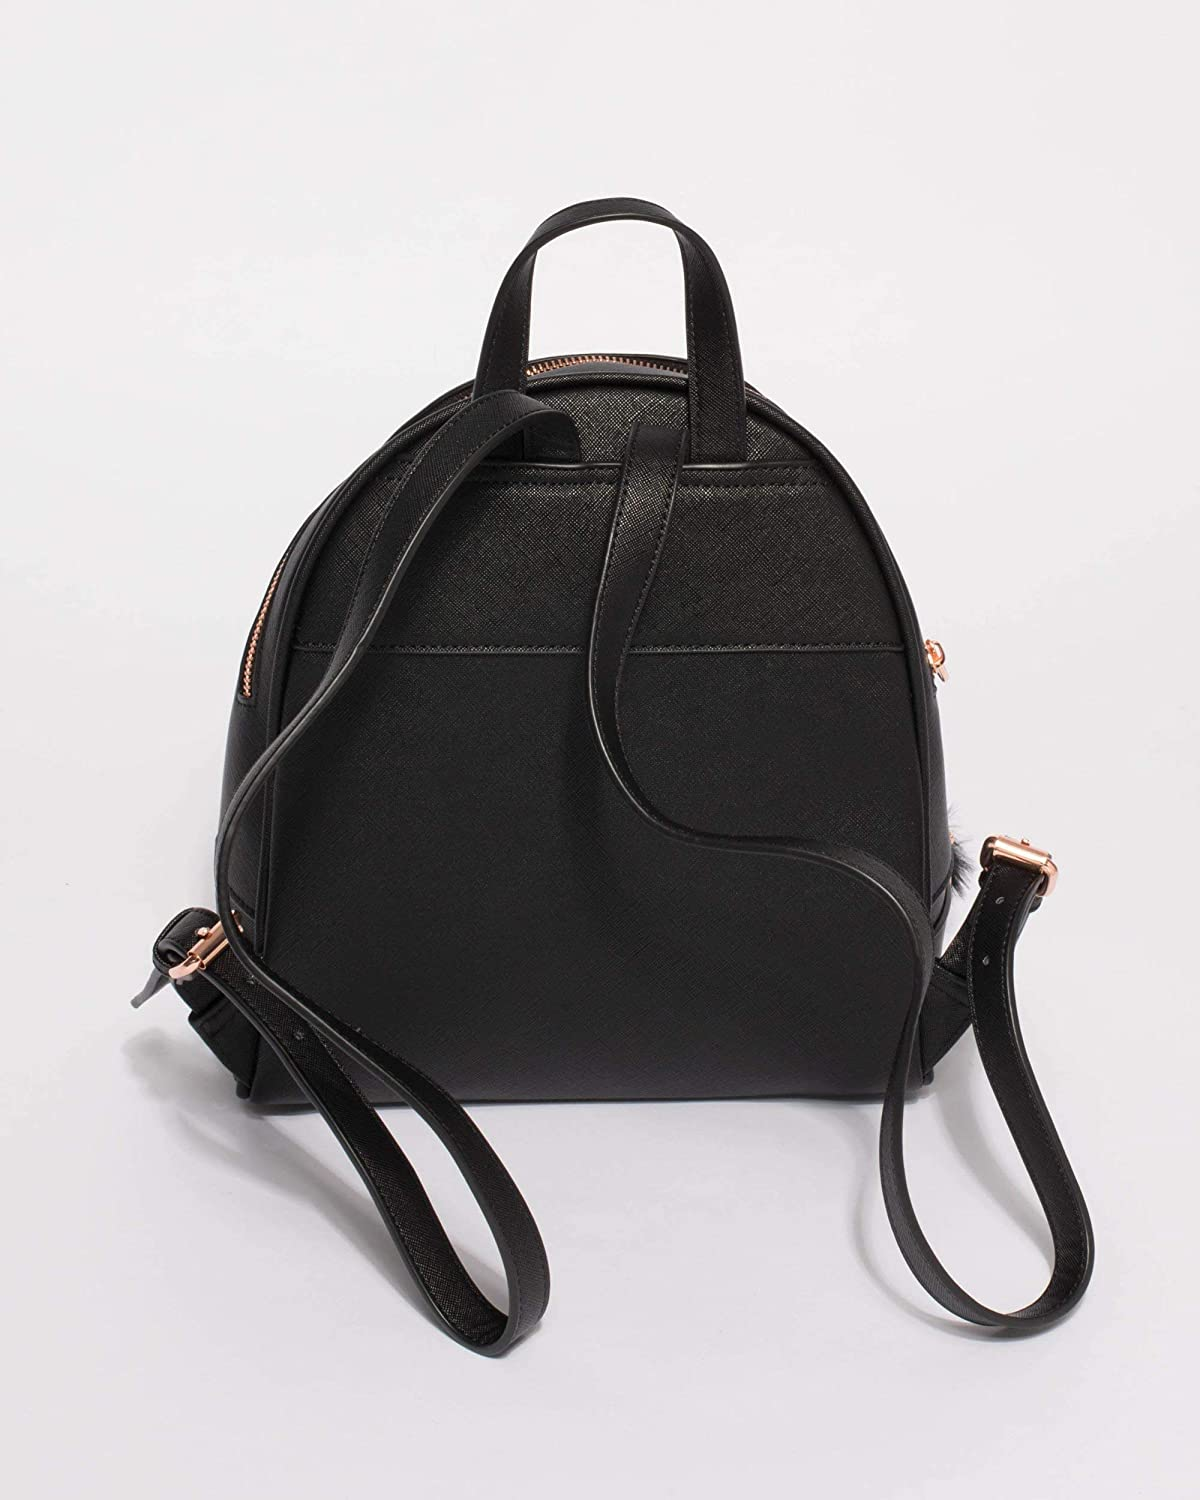 6eea28703b76 Colette Hayman - Bridget Black Medium Rose Gold Hardware Backpack   Amazon.com.au  Fashion